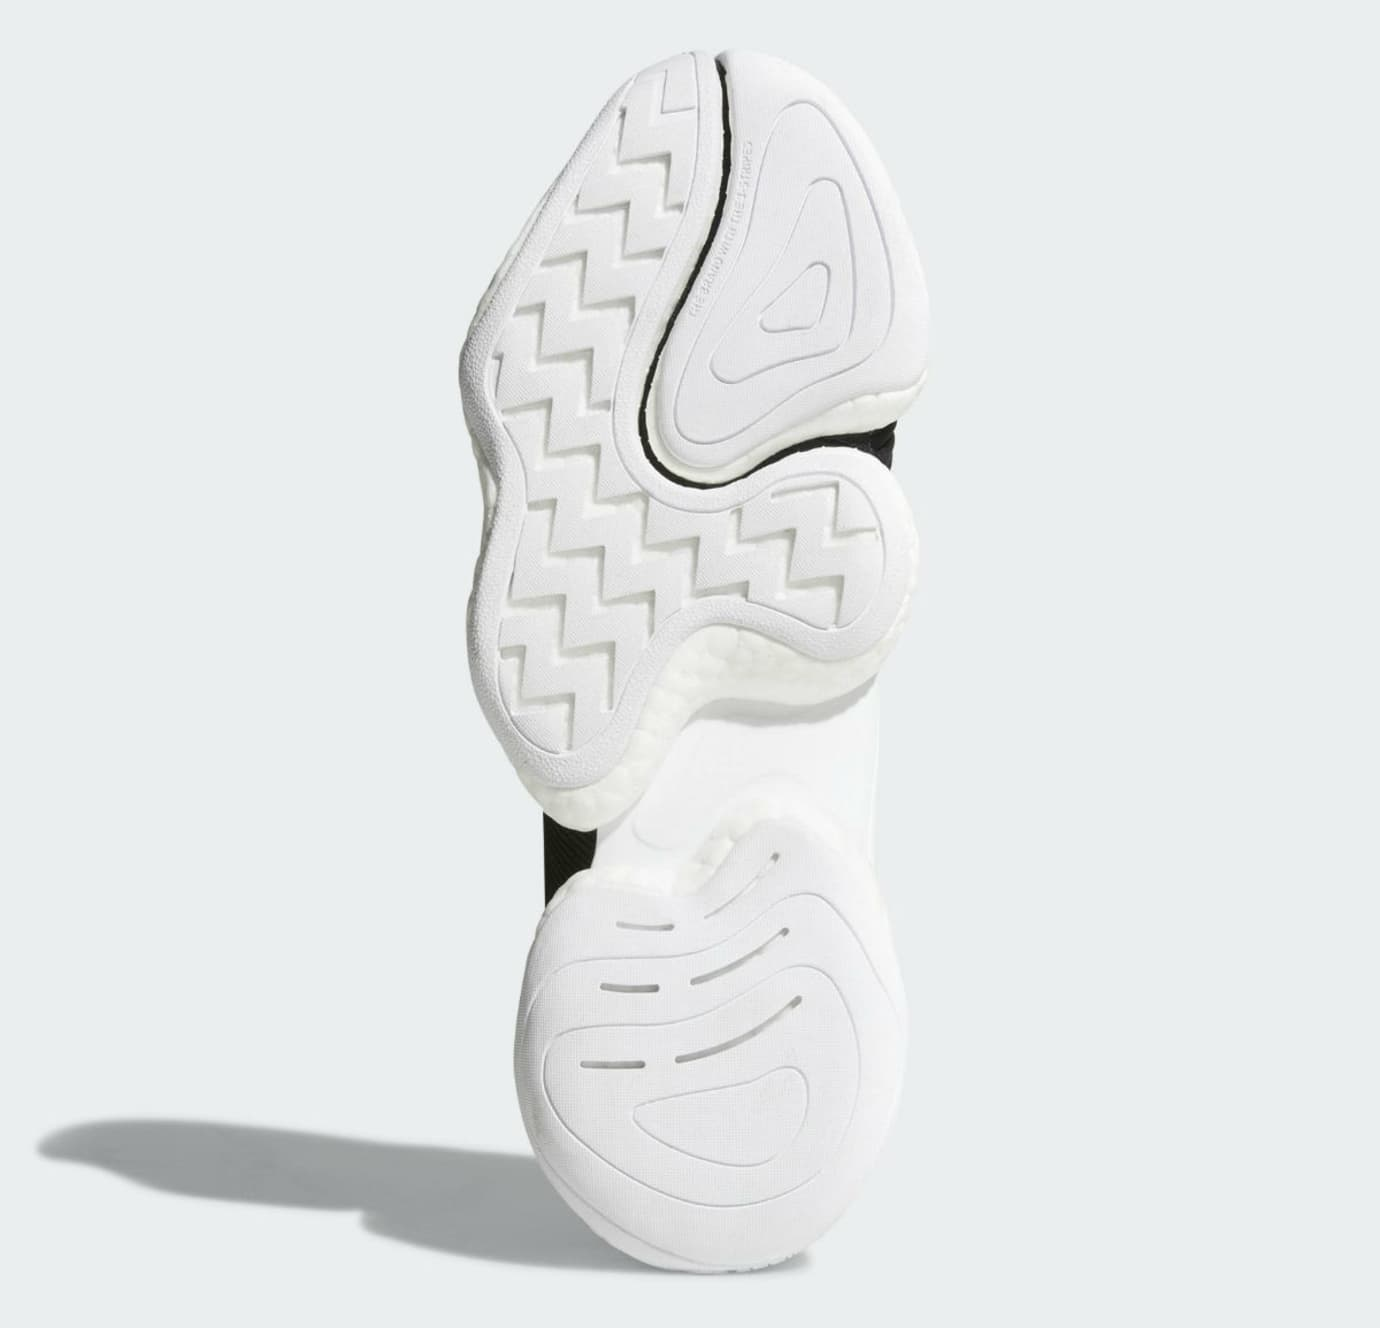 Adidas Crazy BYW LVL 1 Black White Release Date CQ0991 Sole